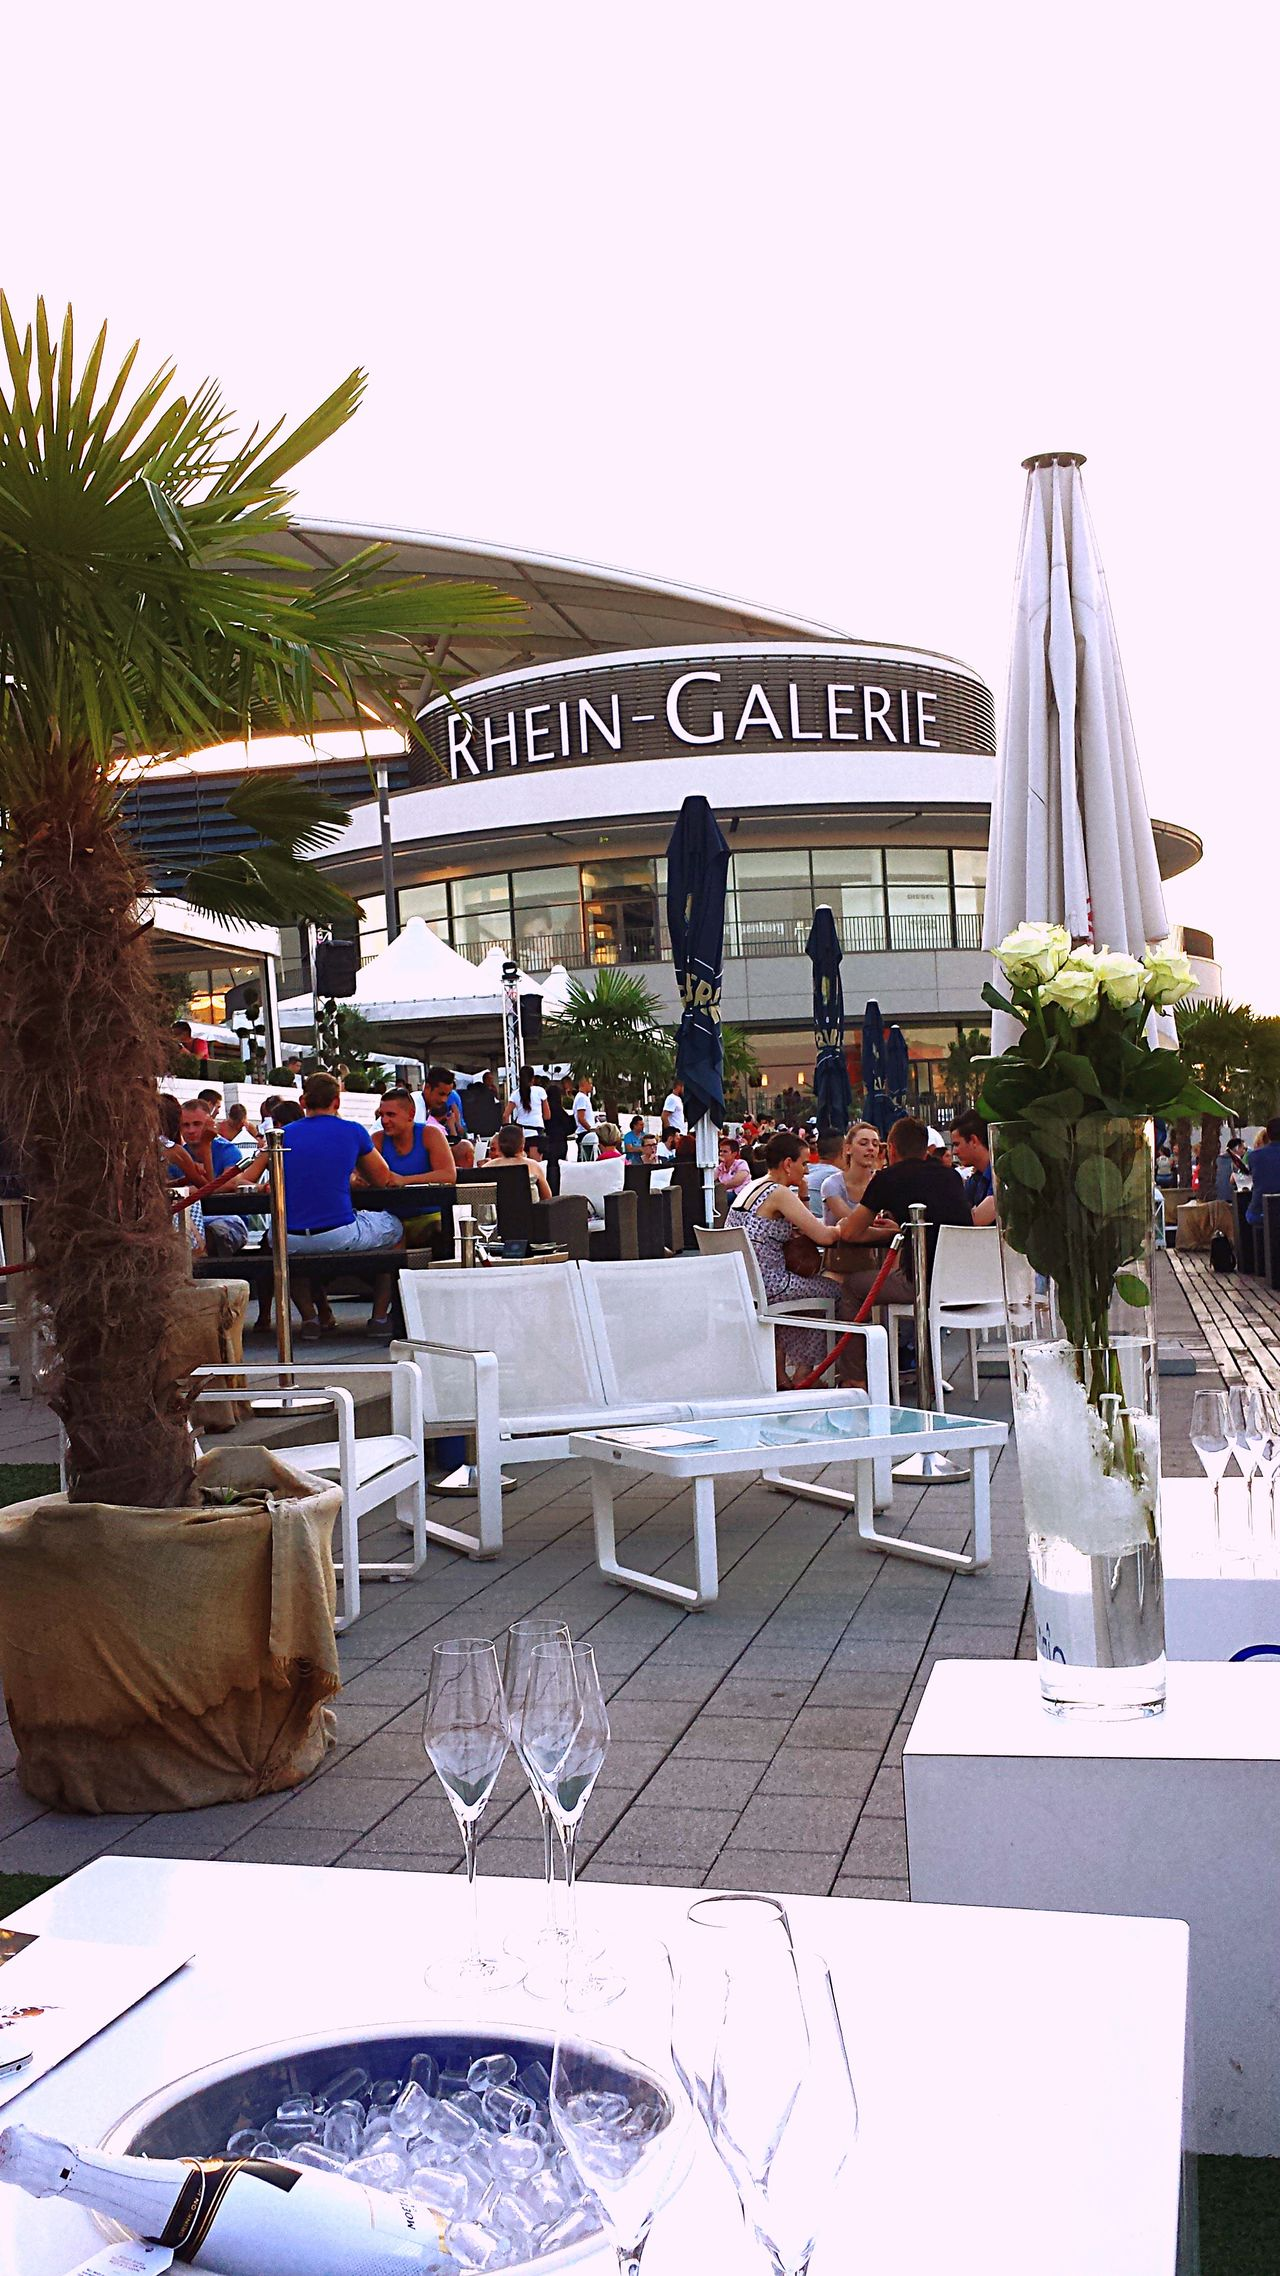 Check This Out Summer Chilling Rhein Shopping Mall Vacation Holiday Ludwigshafen RheinGalerie Germany